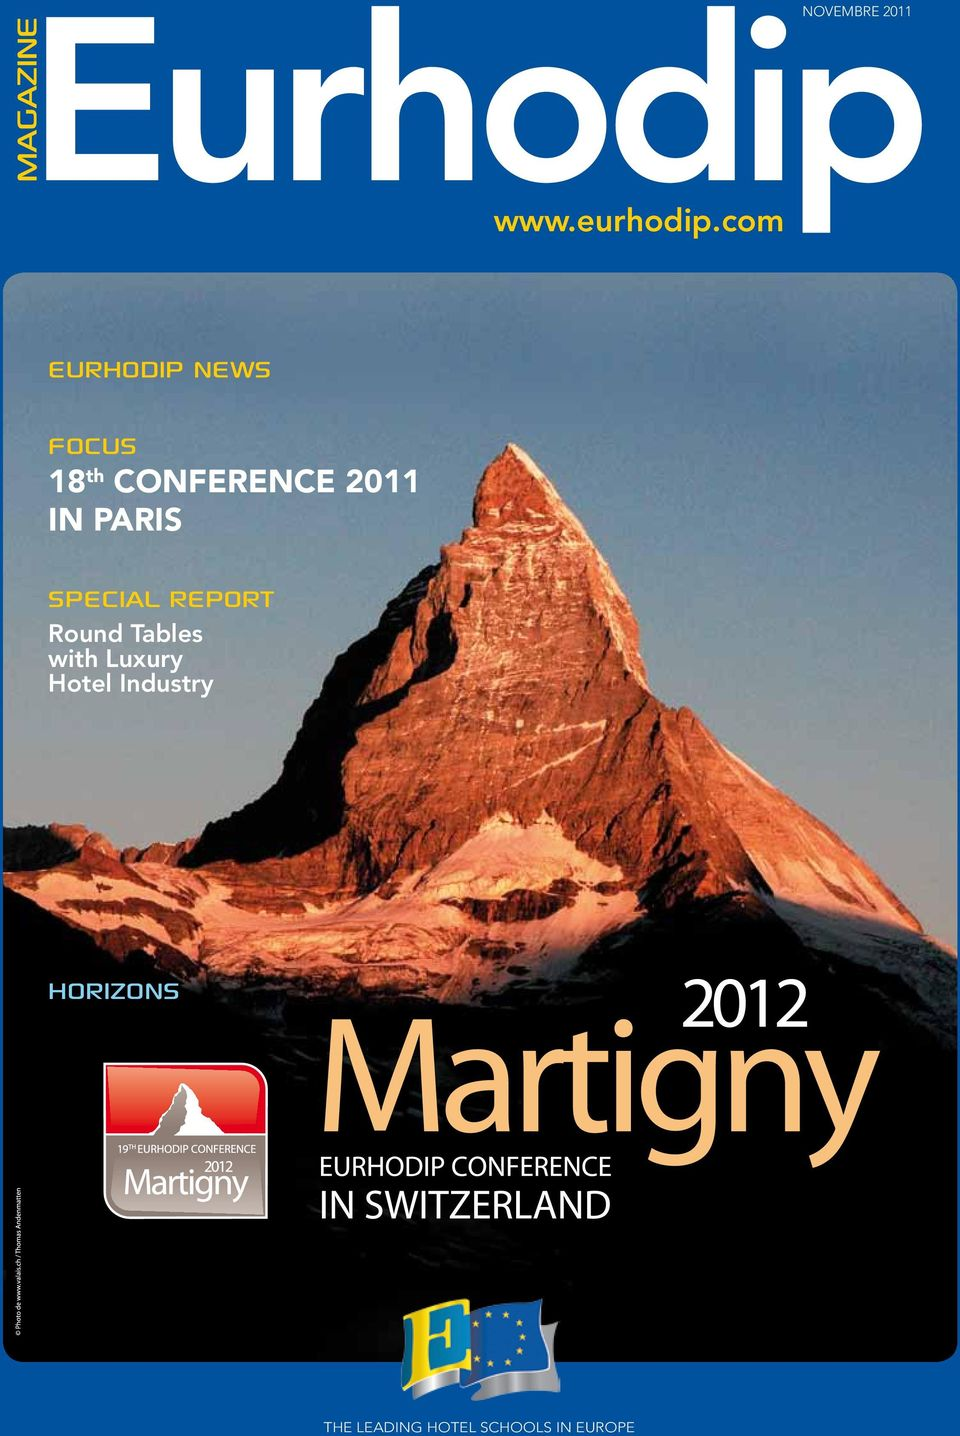 Conference 2011 in Paris SPECIAL REPORT Round